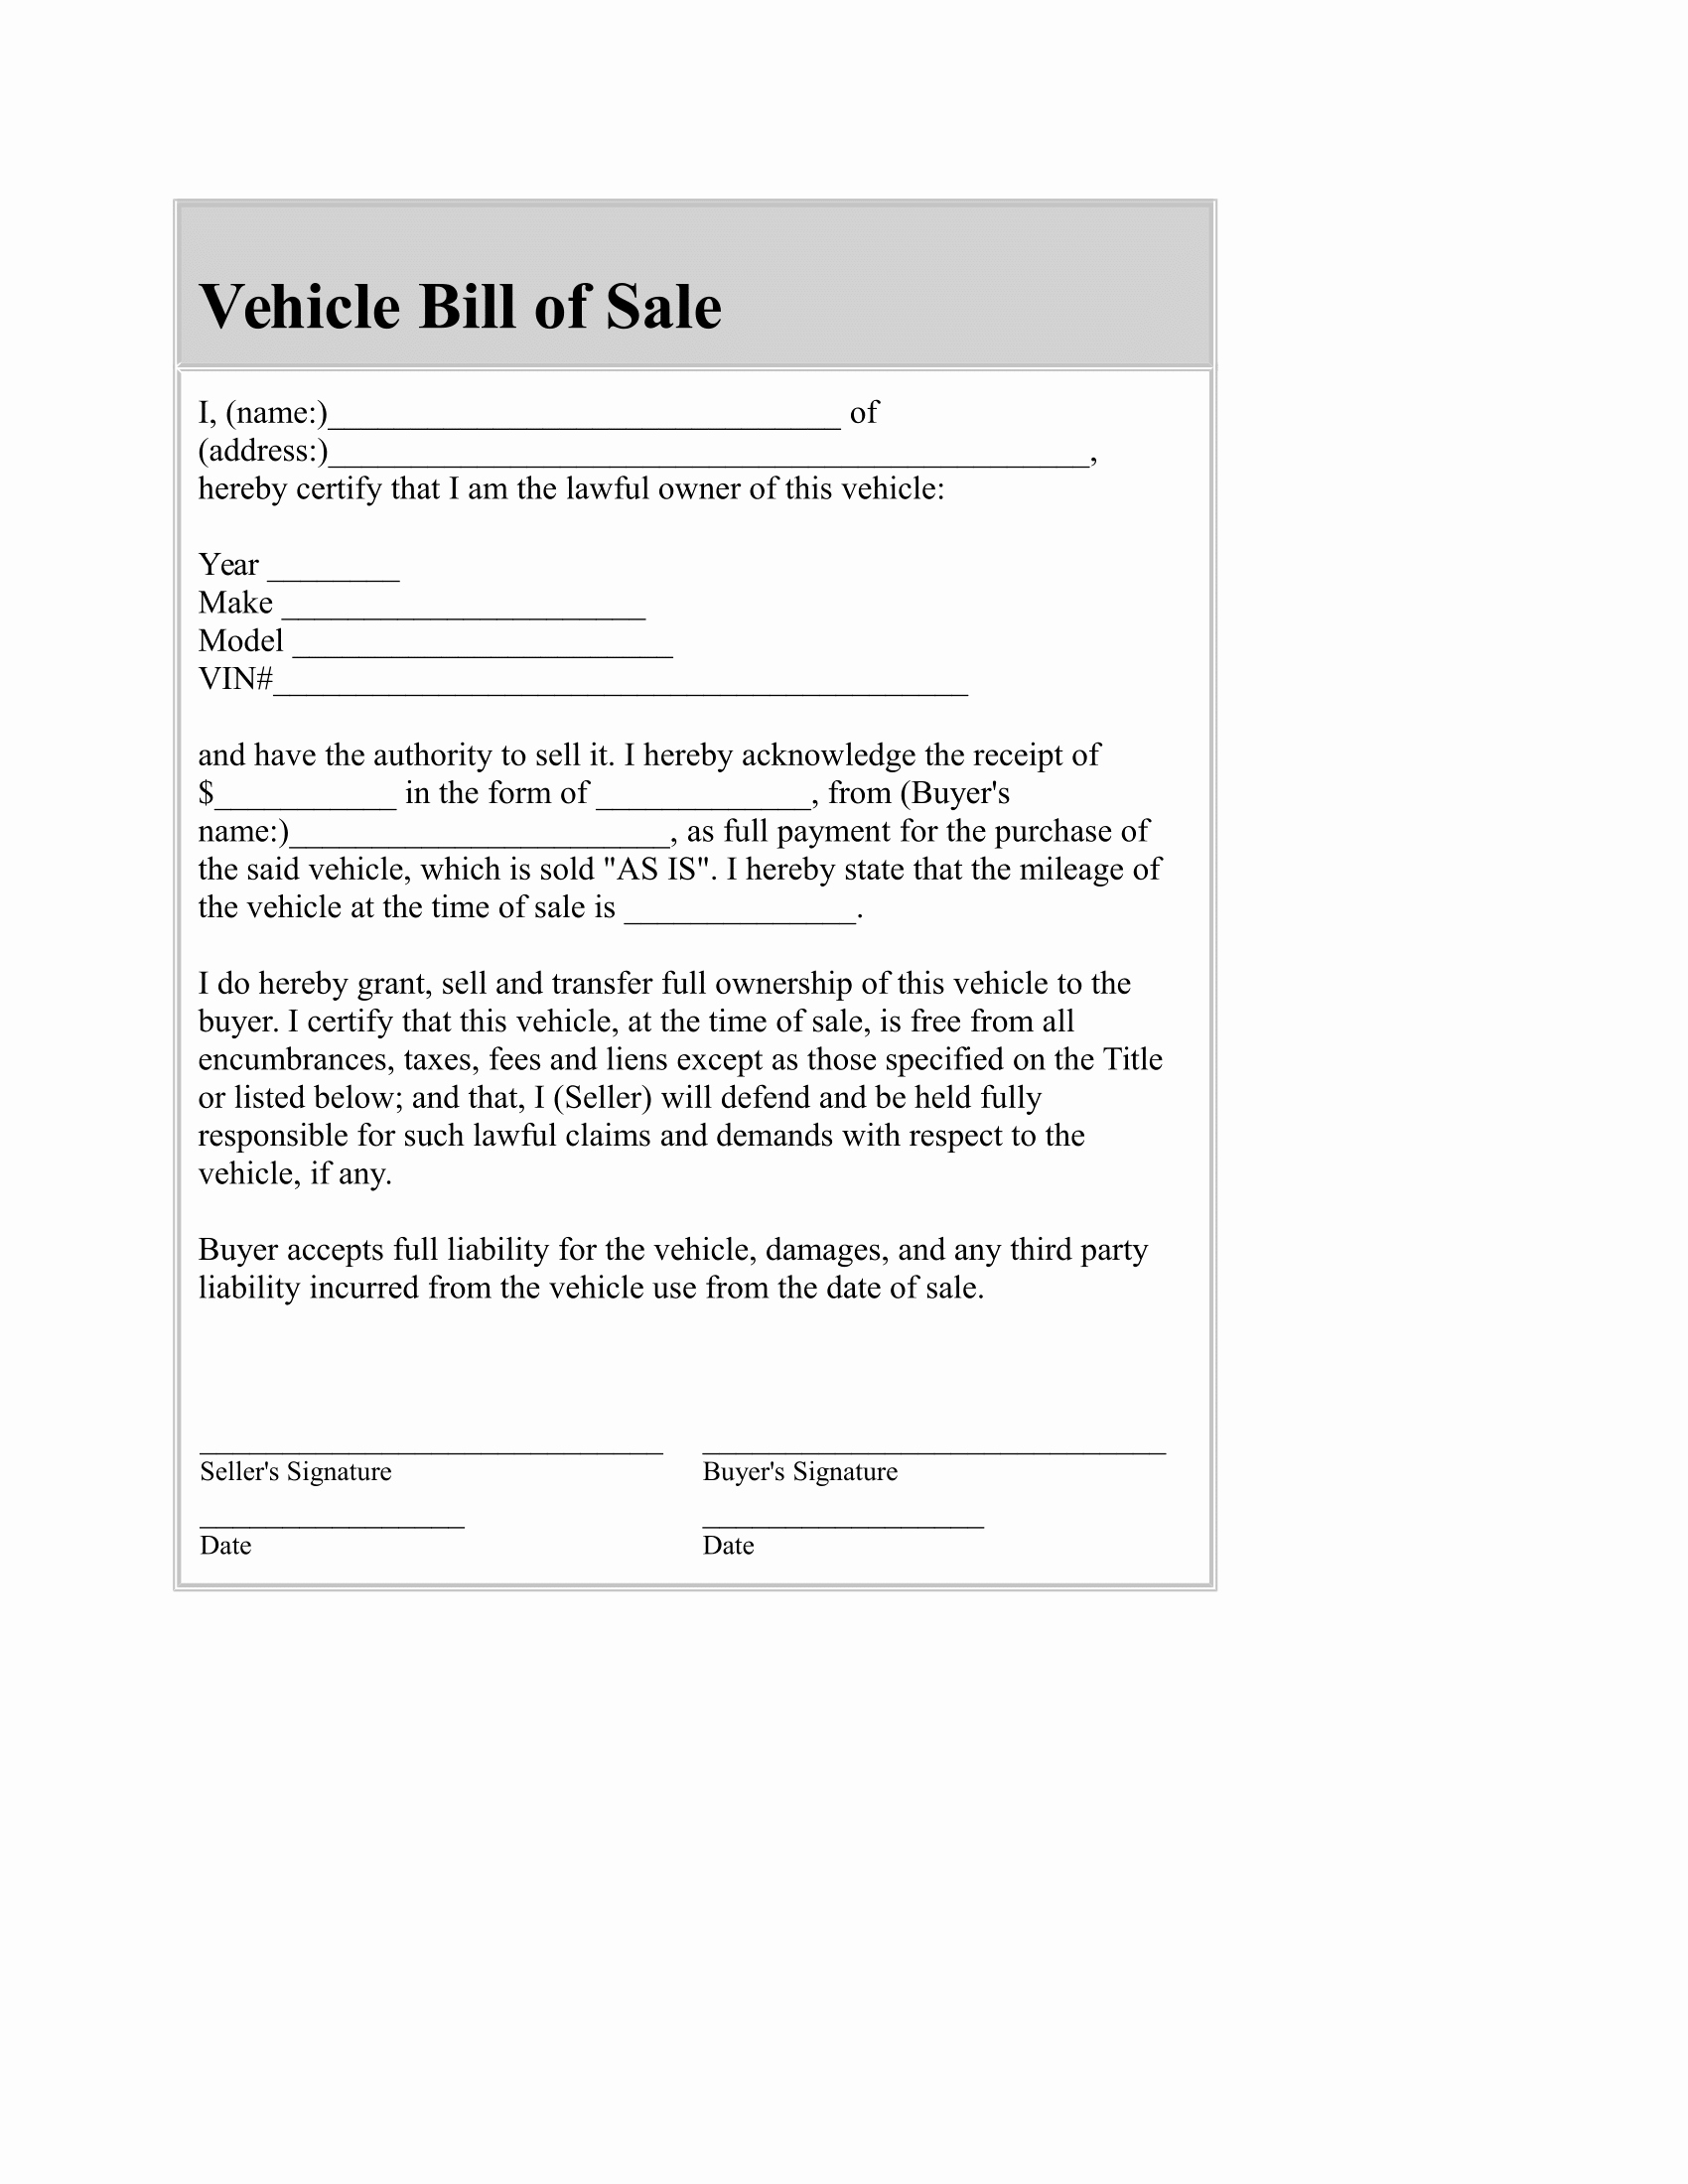 Bill Of Sale Document Template Best Of Simple Bill Sale for Car Template Luxury Generald and